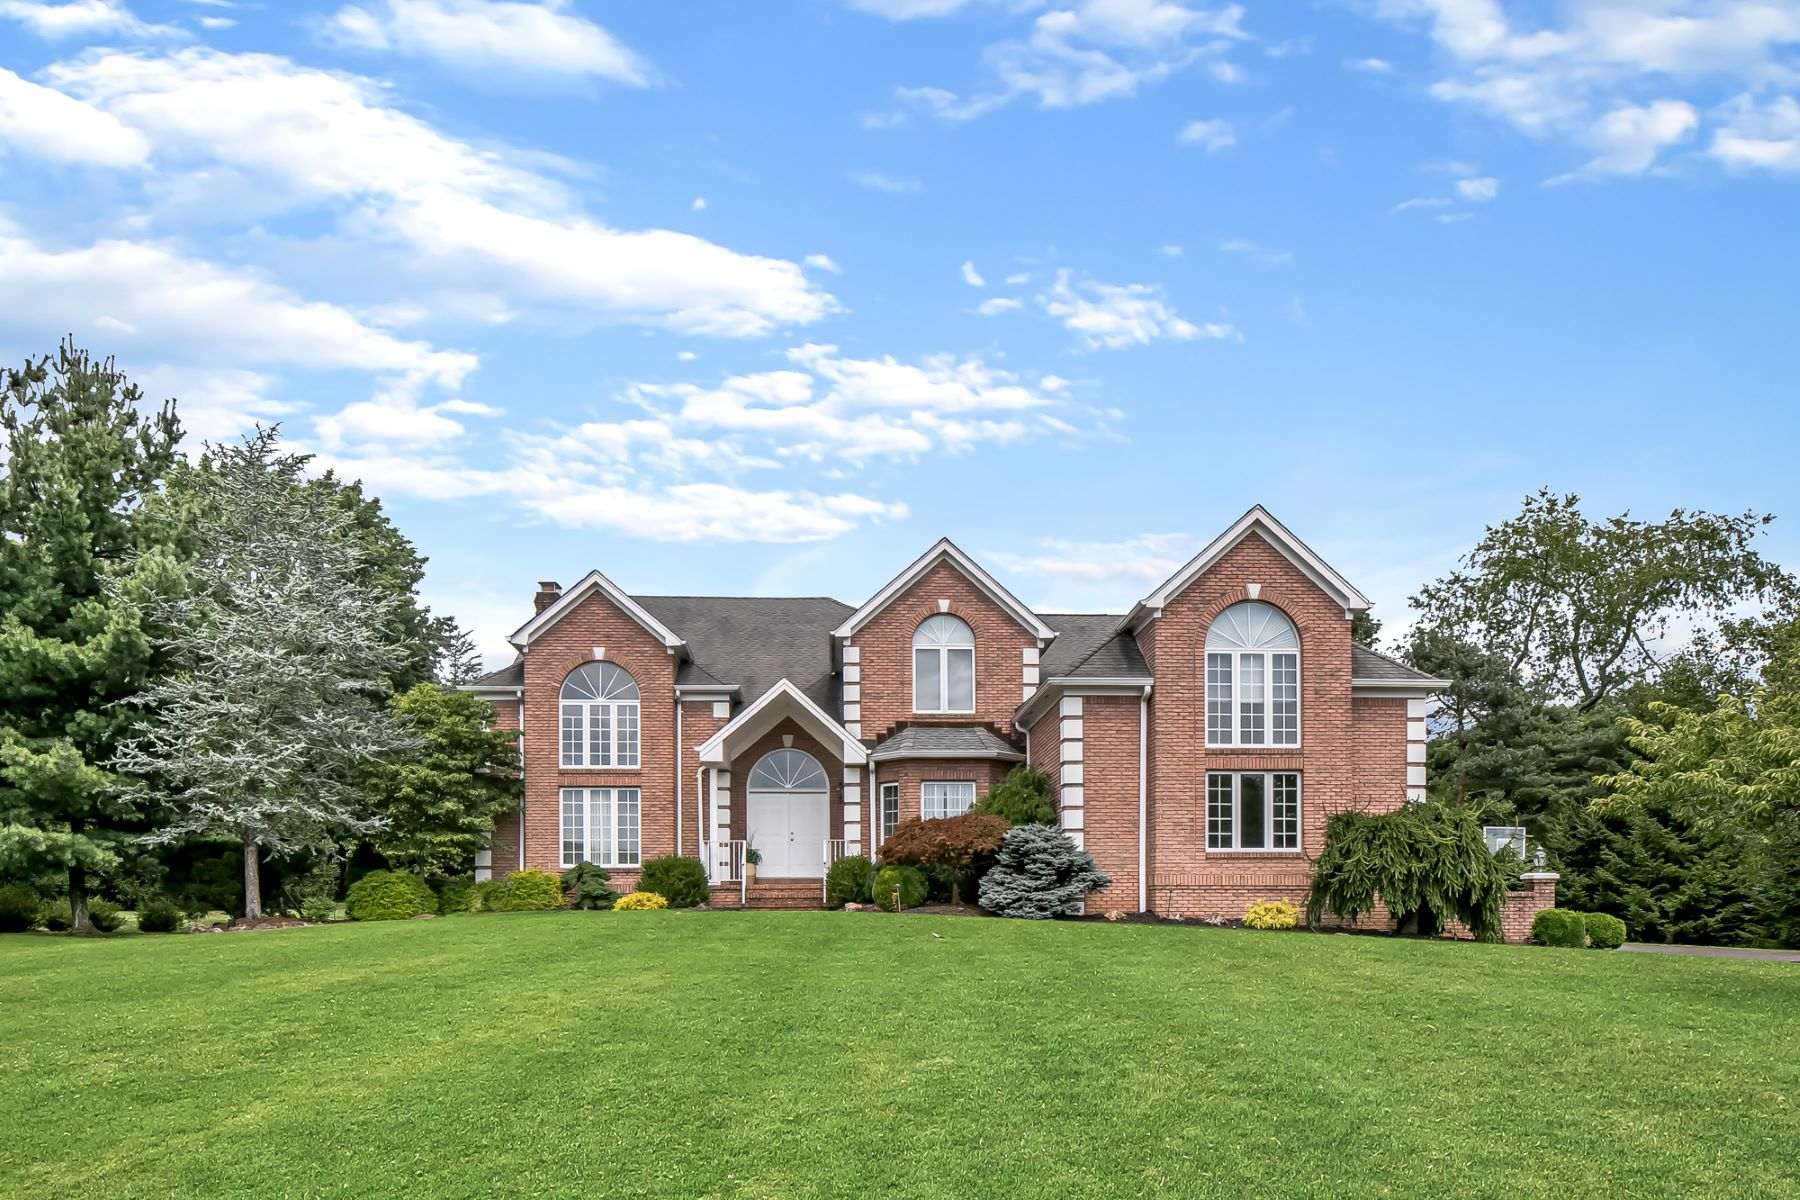 Single Family Homes for Sale at Magnificent Colonial 31 Beacon Hill Drive, Chester, New Jersey 0730 United States